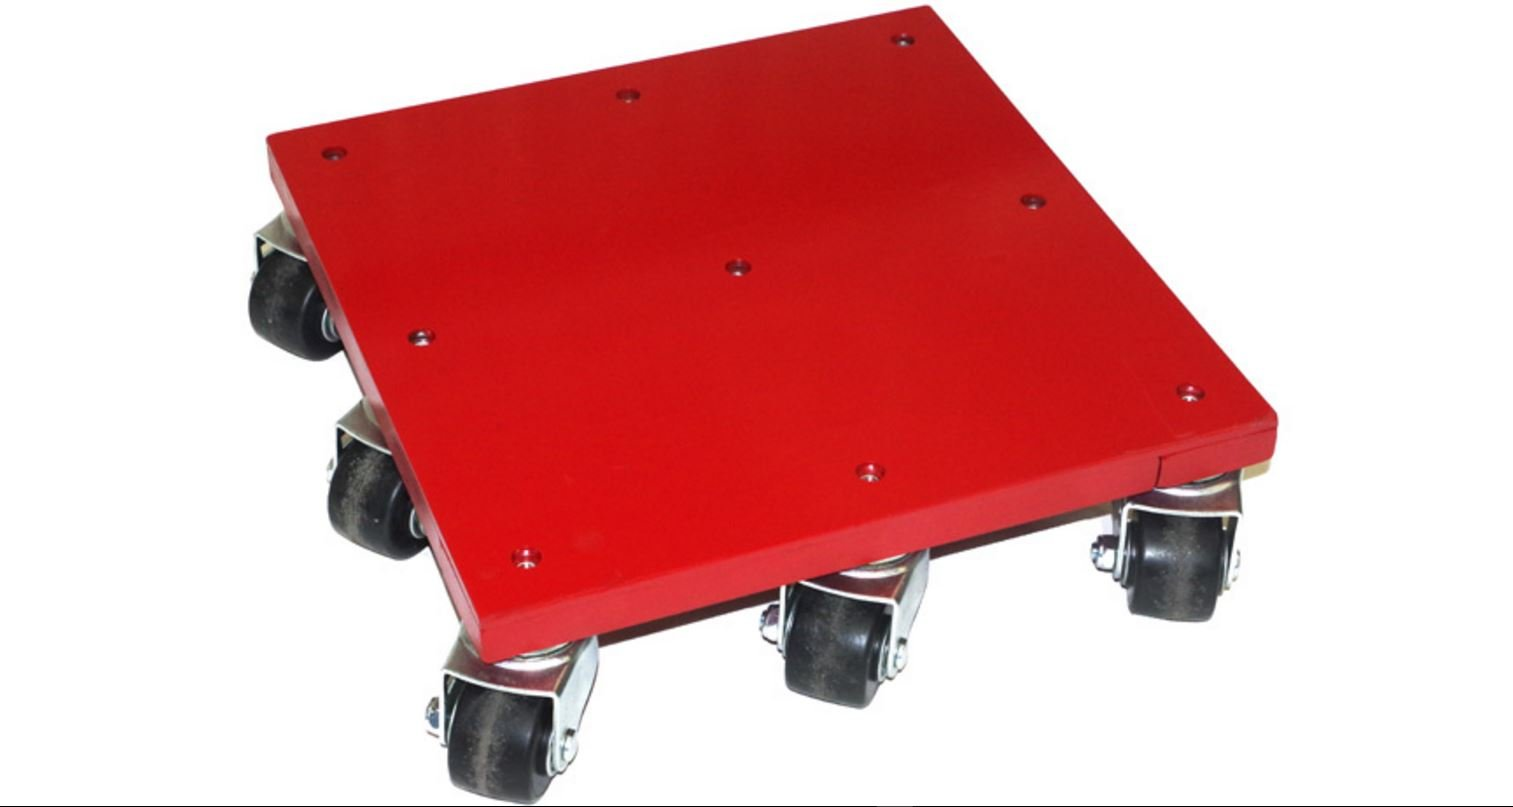 """Industrial Moving Dolly - 5,000 Capacity - 16""""x16"""" Flush Flat Top - Heavy Duty Rigging Skate - Professional Equipment Mover Dollies - 9 Easy Roll Casters - Rotating Swivel & Axle Bearings"""